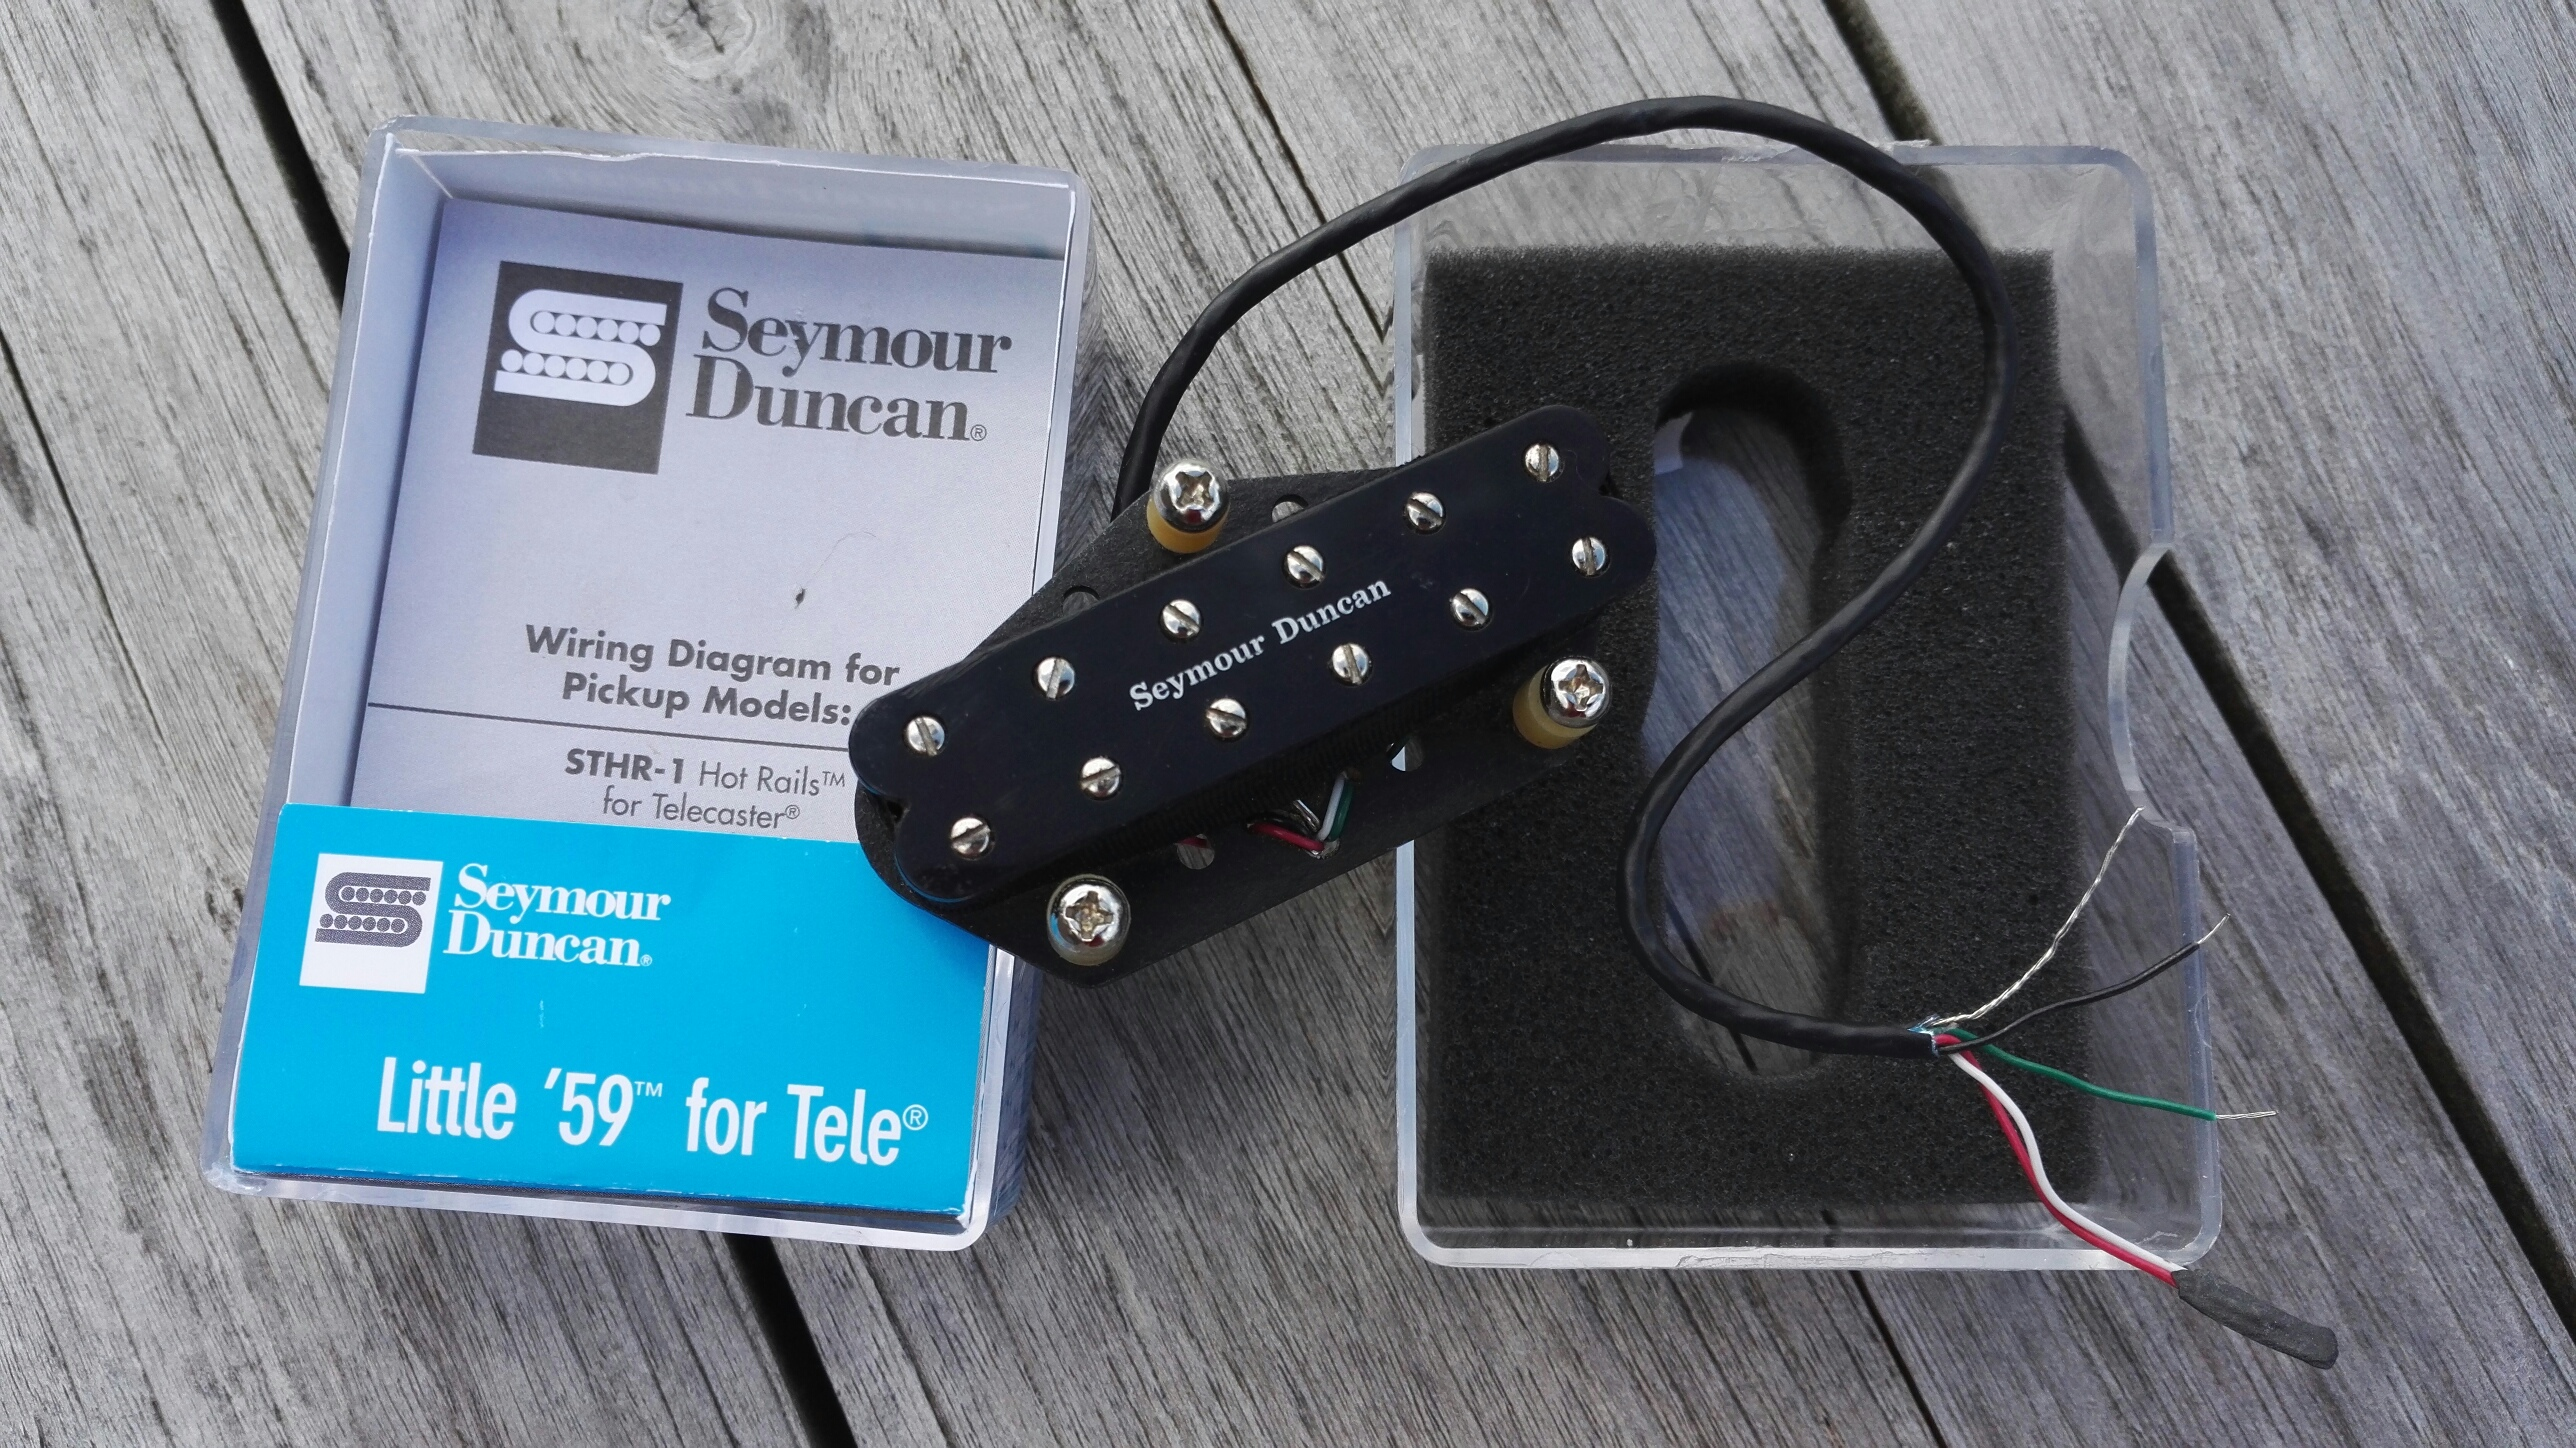 Seymour Duncan Hot Rails Wiring Diagram Telecaster Solutions Coil Tap Little 59 Tele Electrical Work